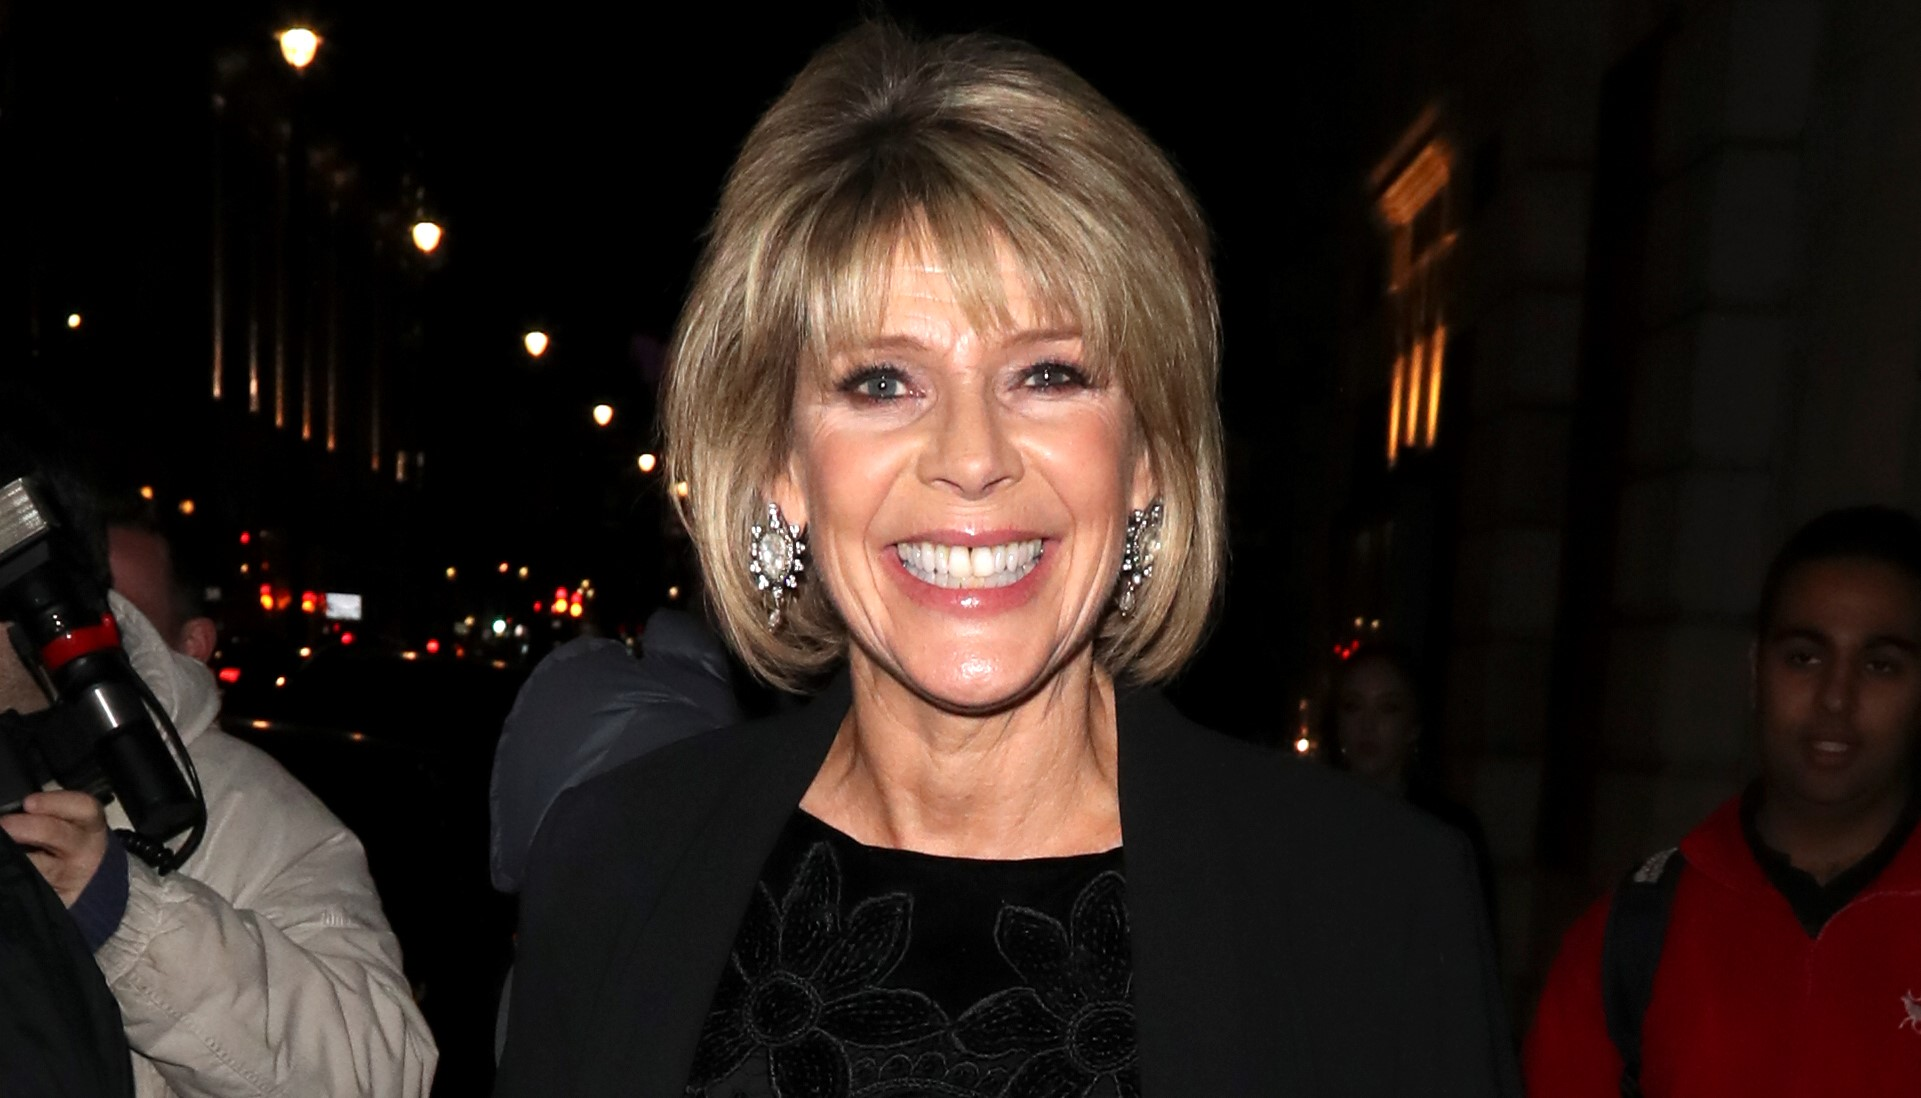 Fans express concern as 'shaken' Ruth Langsford reveals painful injury after nasty fall